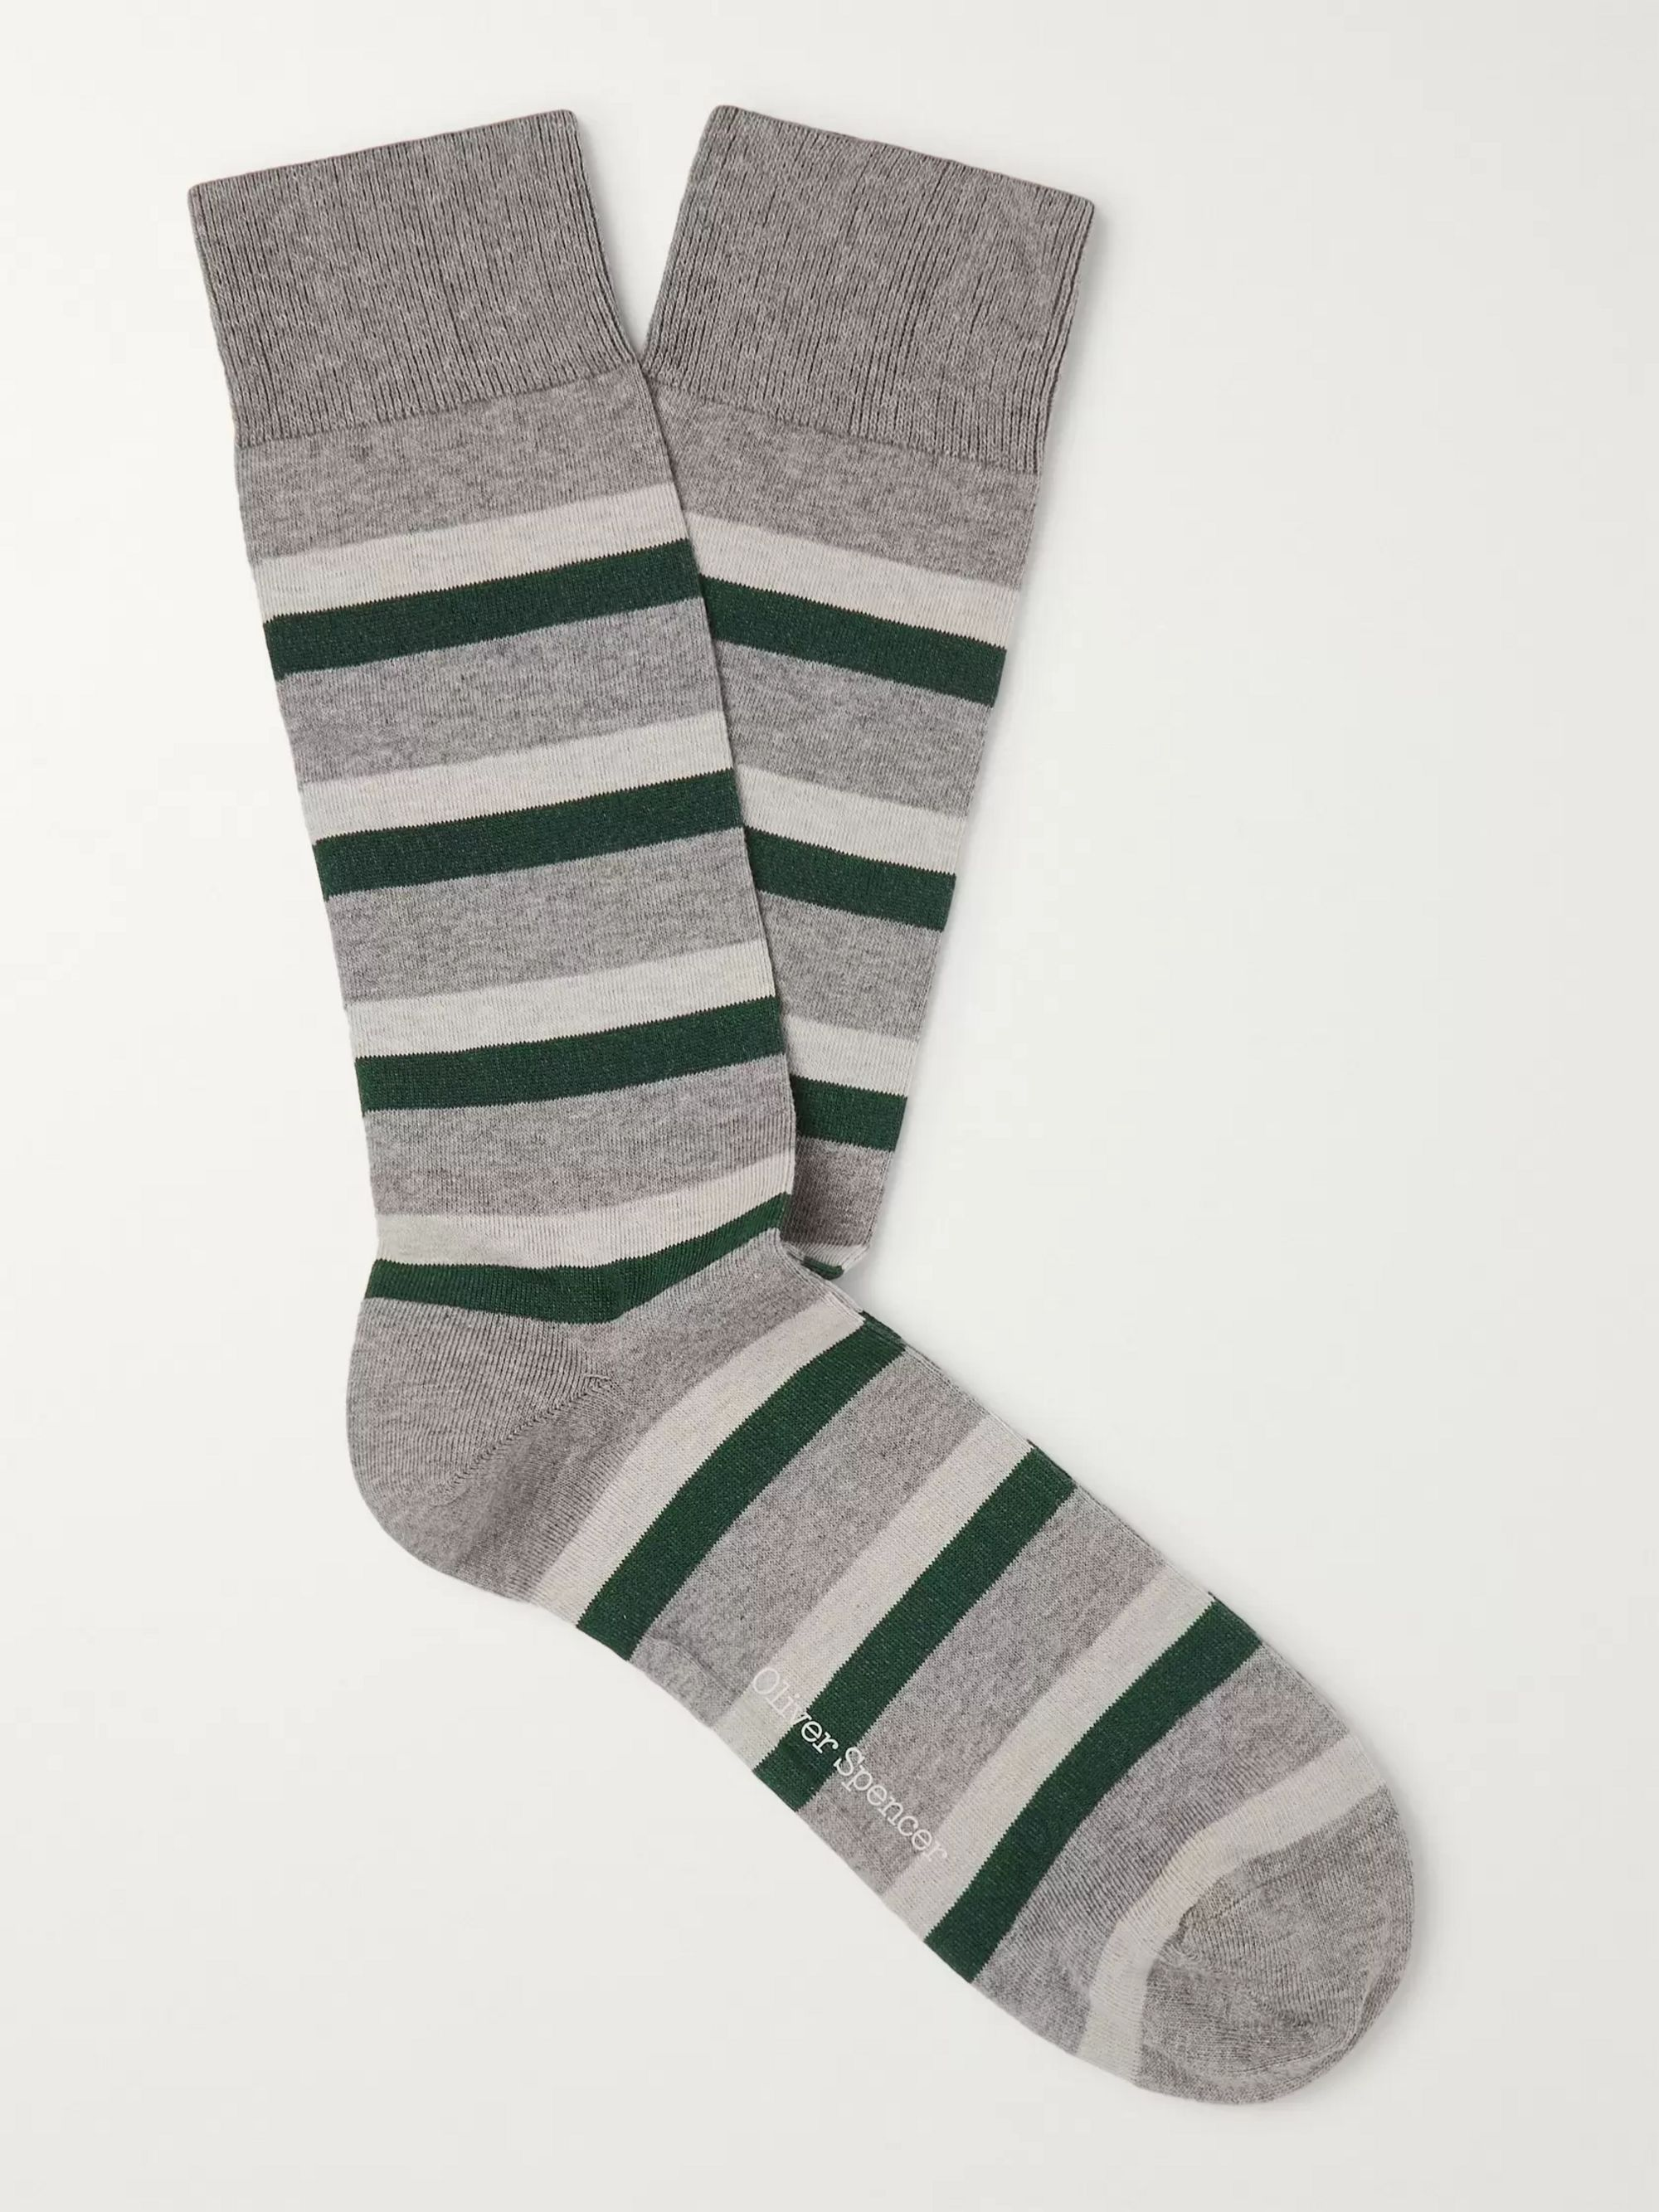 Oliver Spencer Loungewear Striped Cotton-Blend Socks